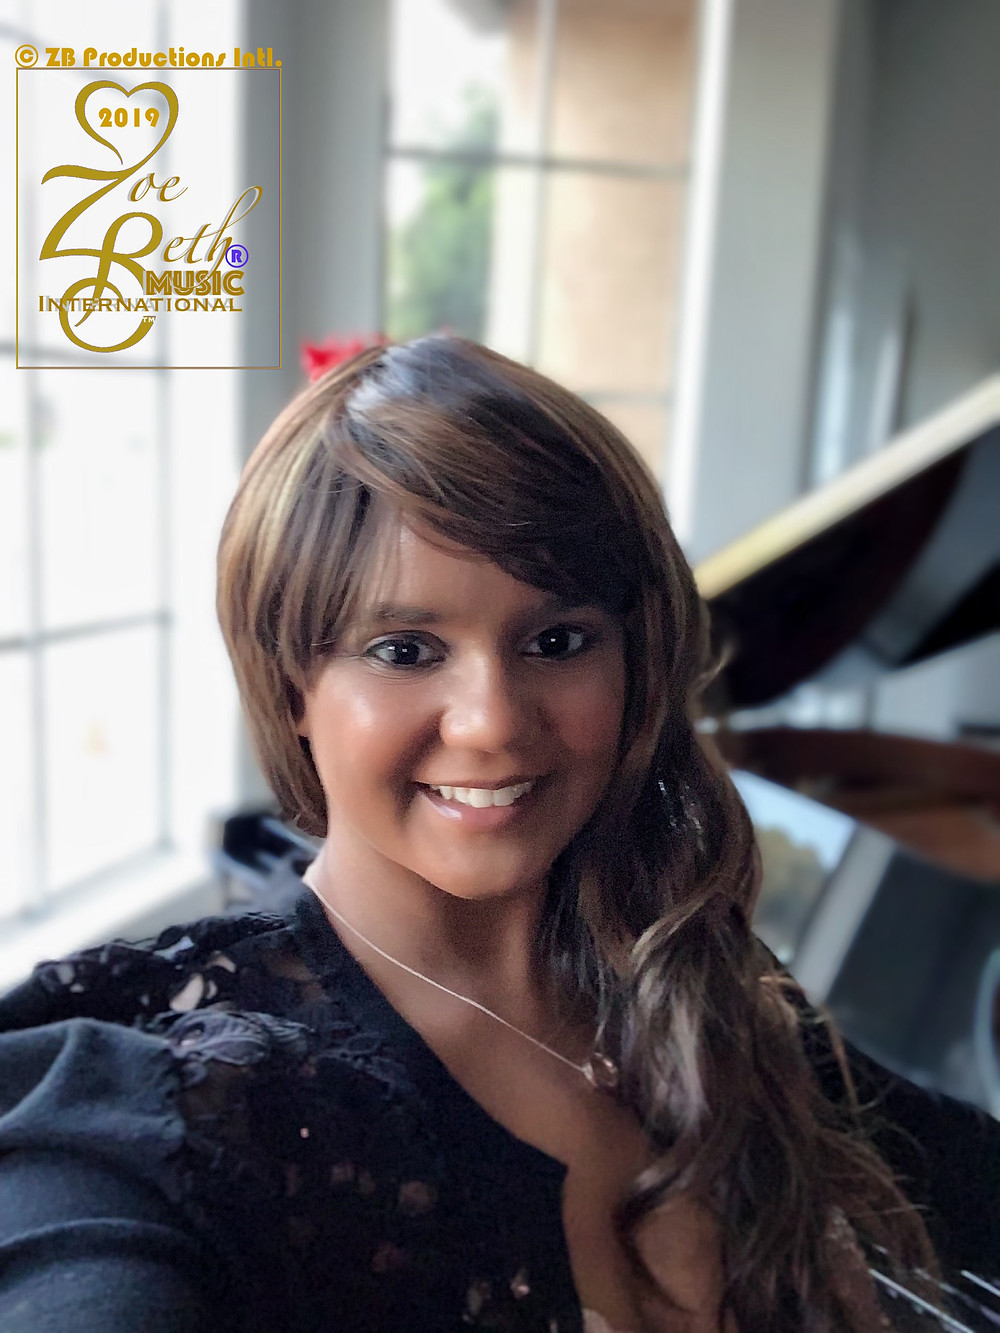 Photo Copyright © ZB® Productions - Zoe Beth® Music Ltd. International 2019